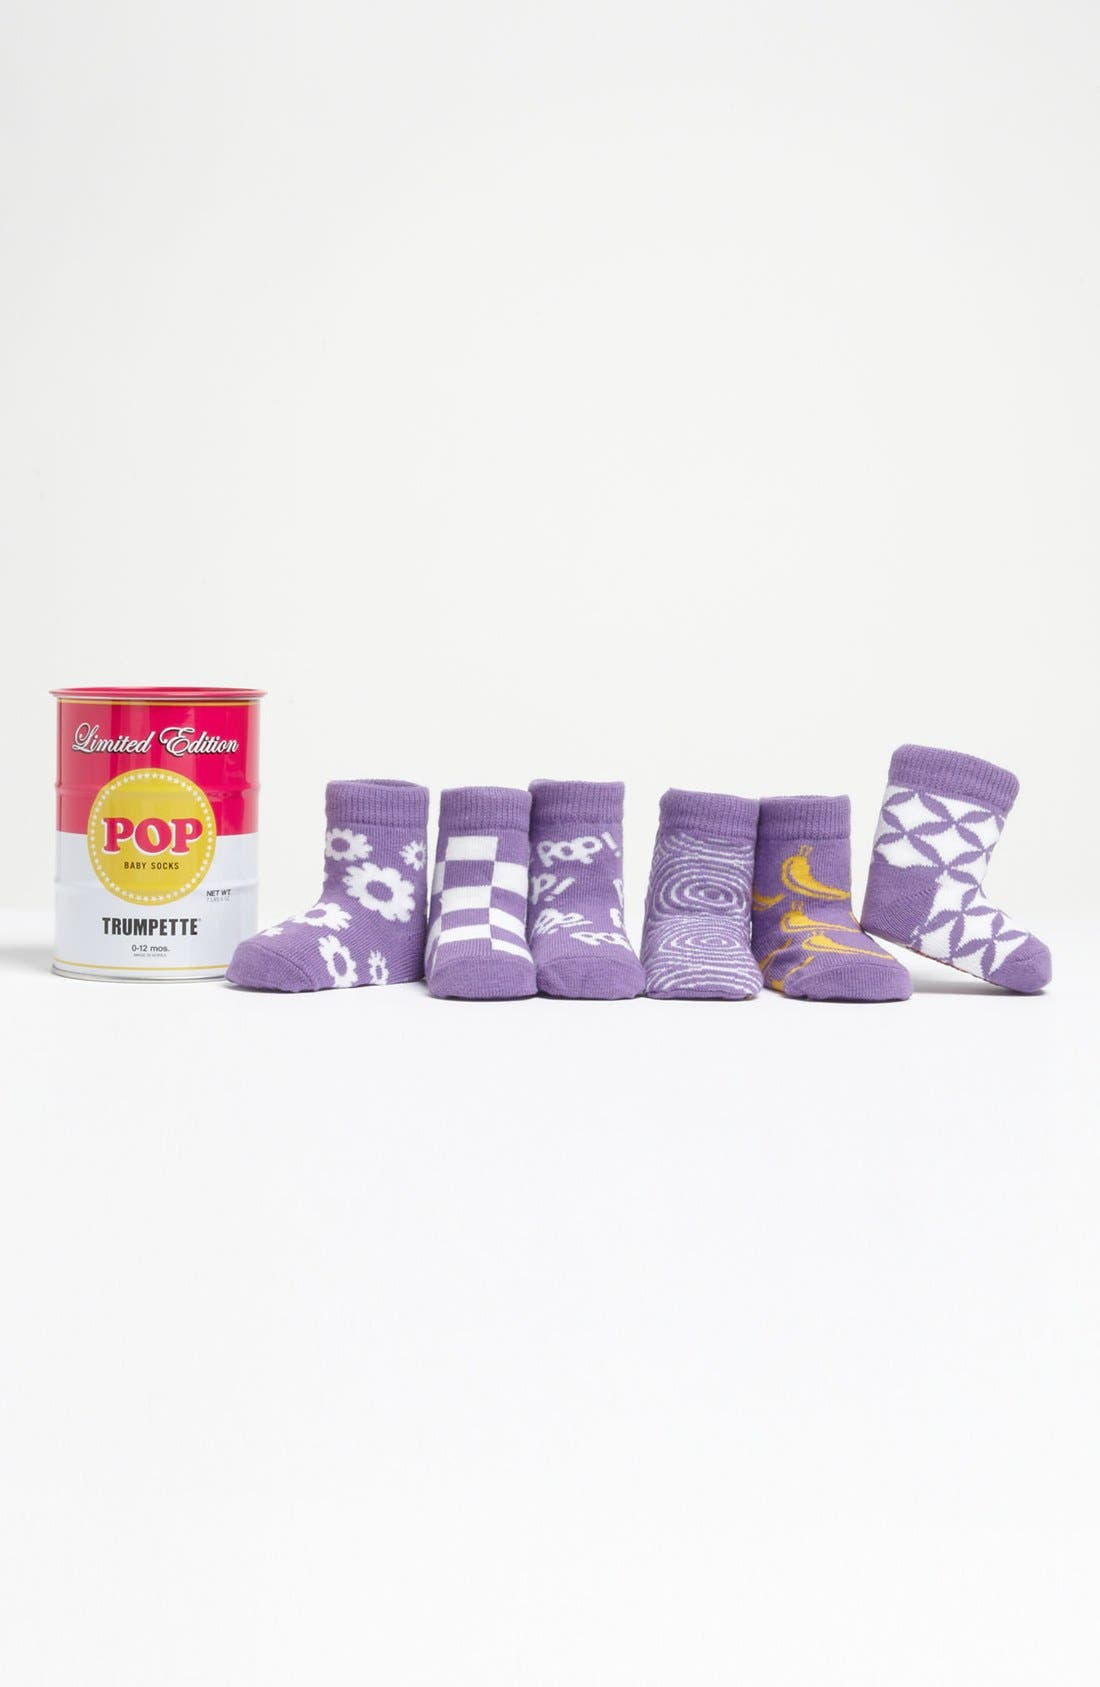 Alternate Image 1 Selected - Trumpette 'Pop Socks in a Tin Can' Sock Set (6-Pack)(Baby Girls)